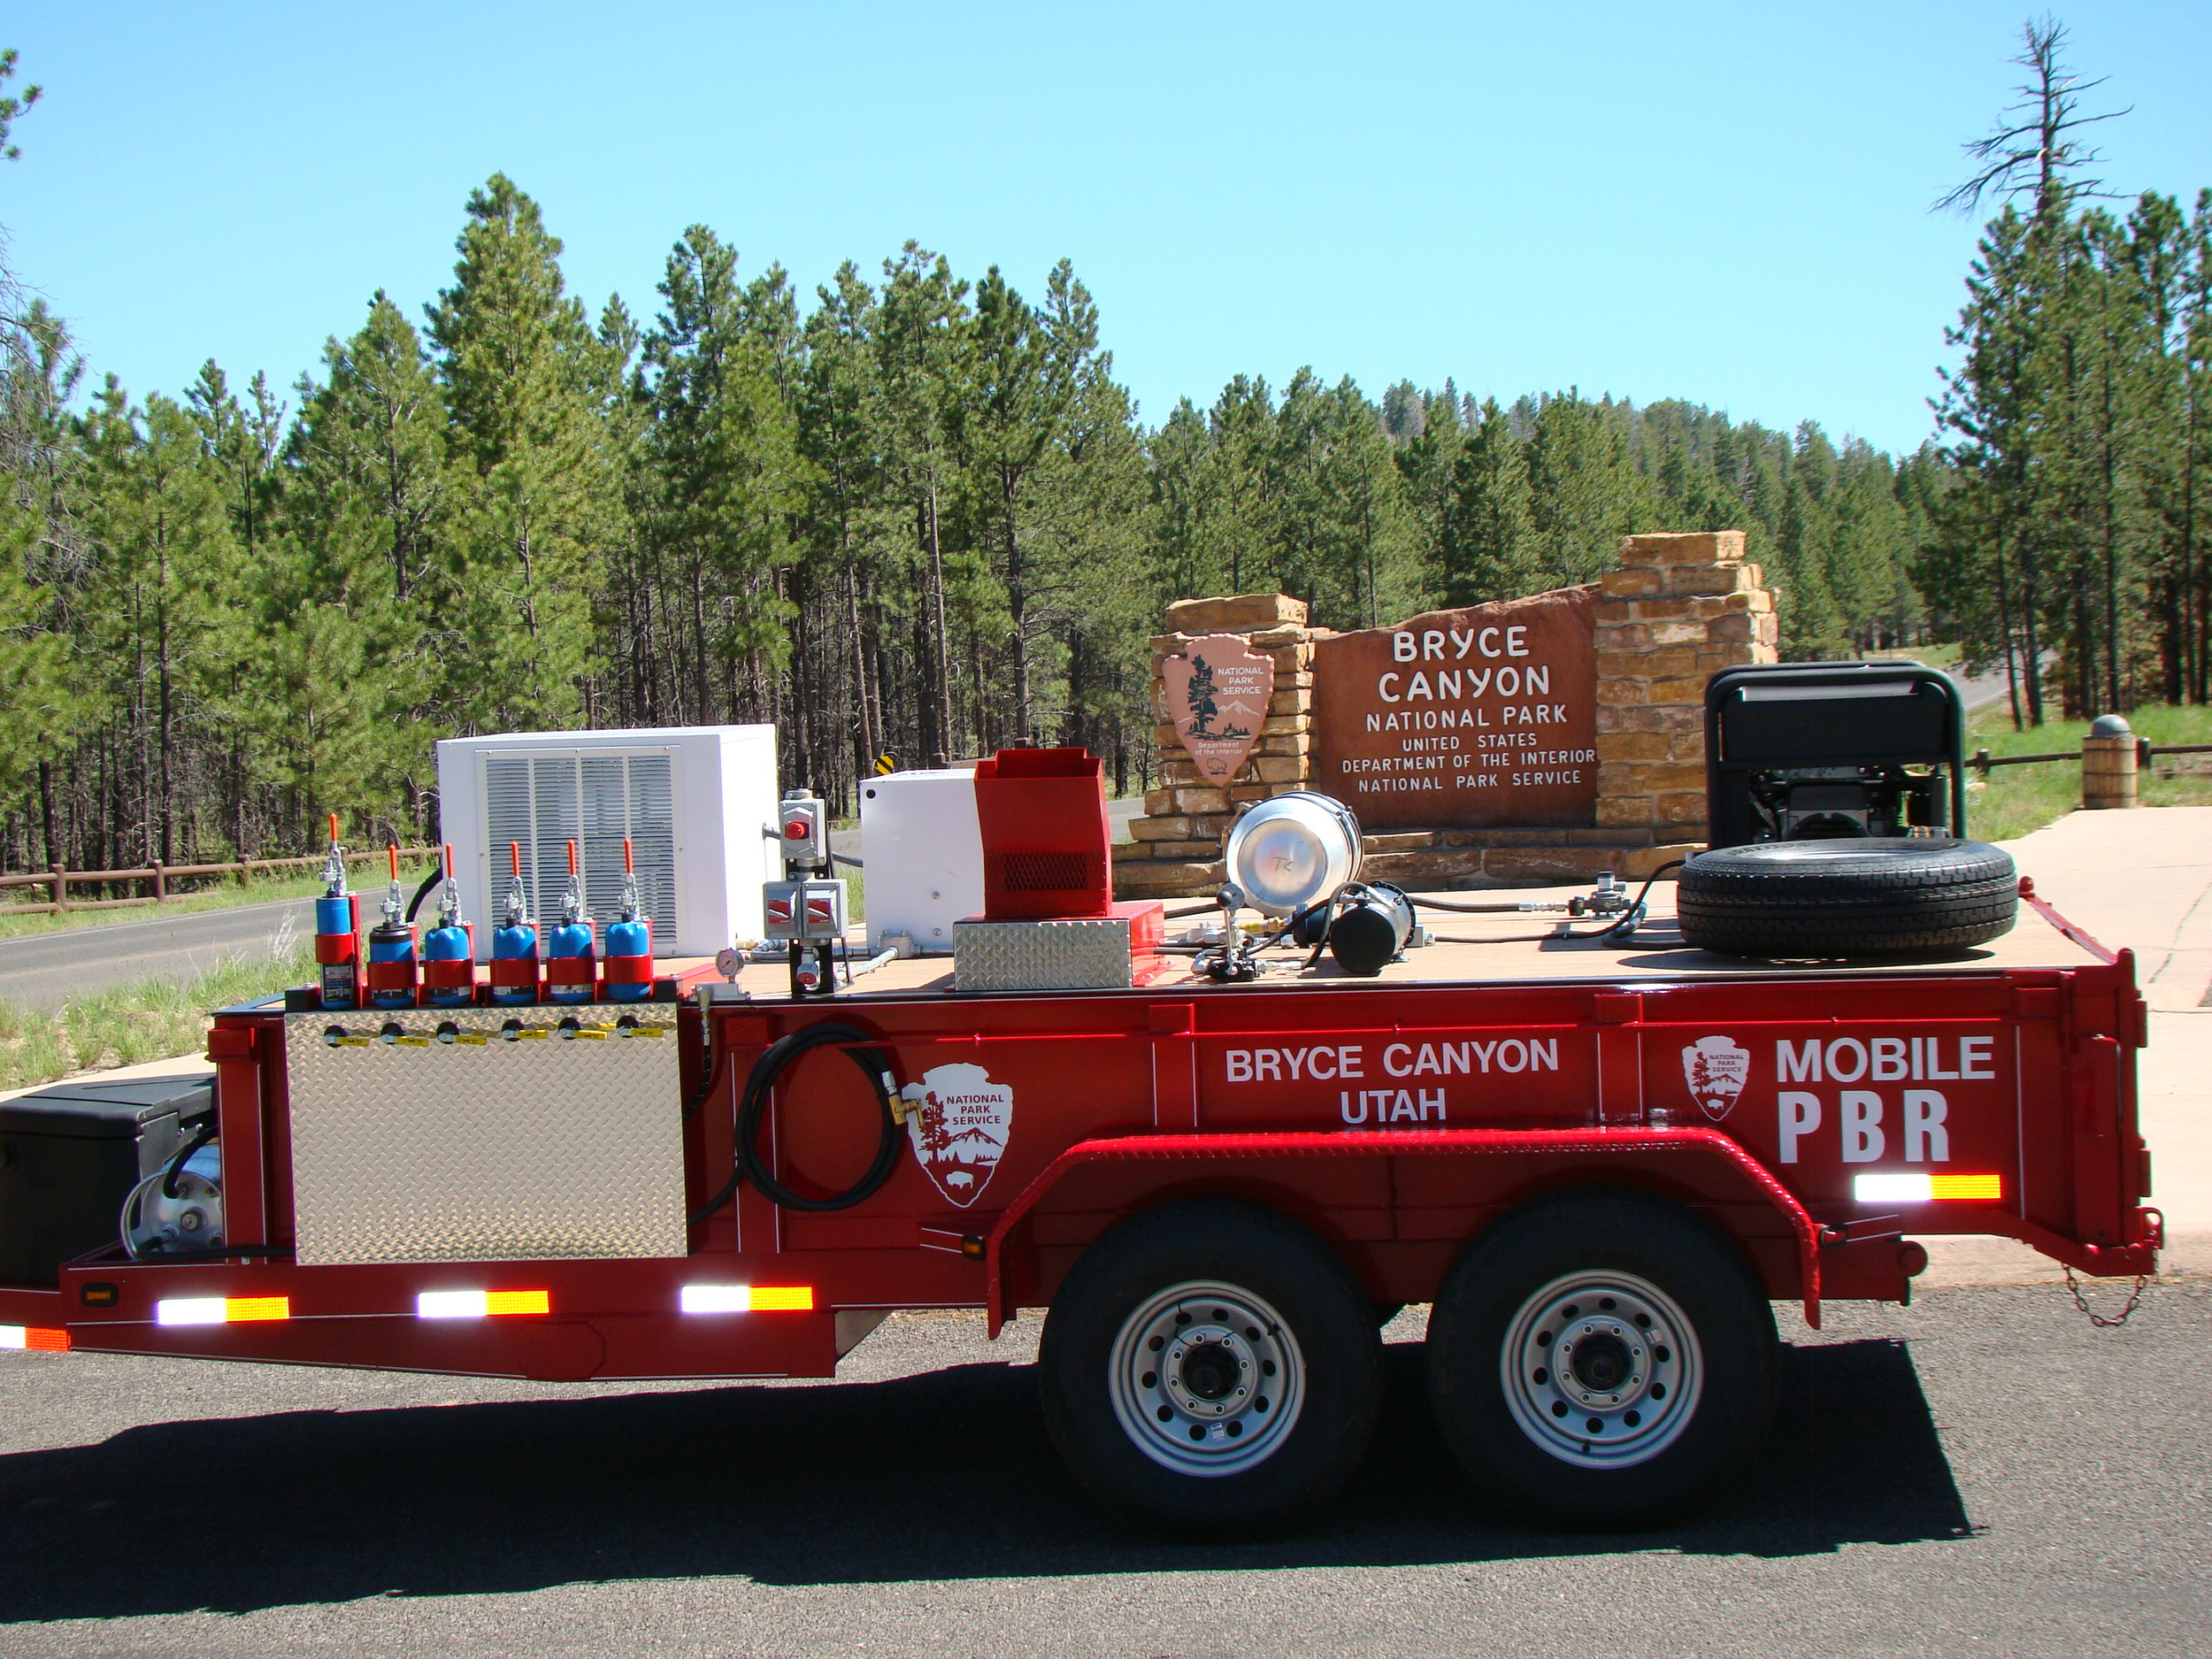 Bryce Canyon National Park Propane Bottle Recycler.jpg